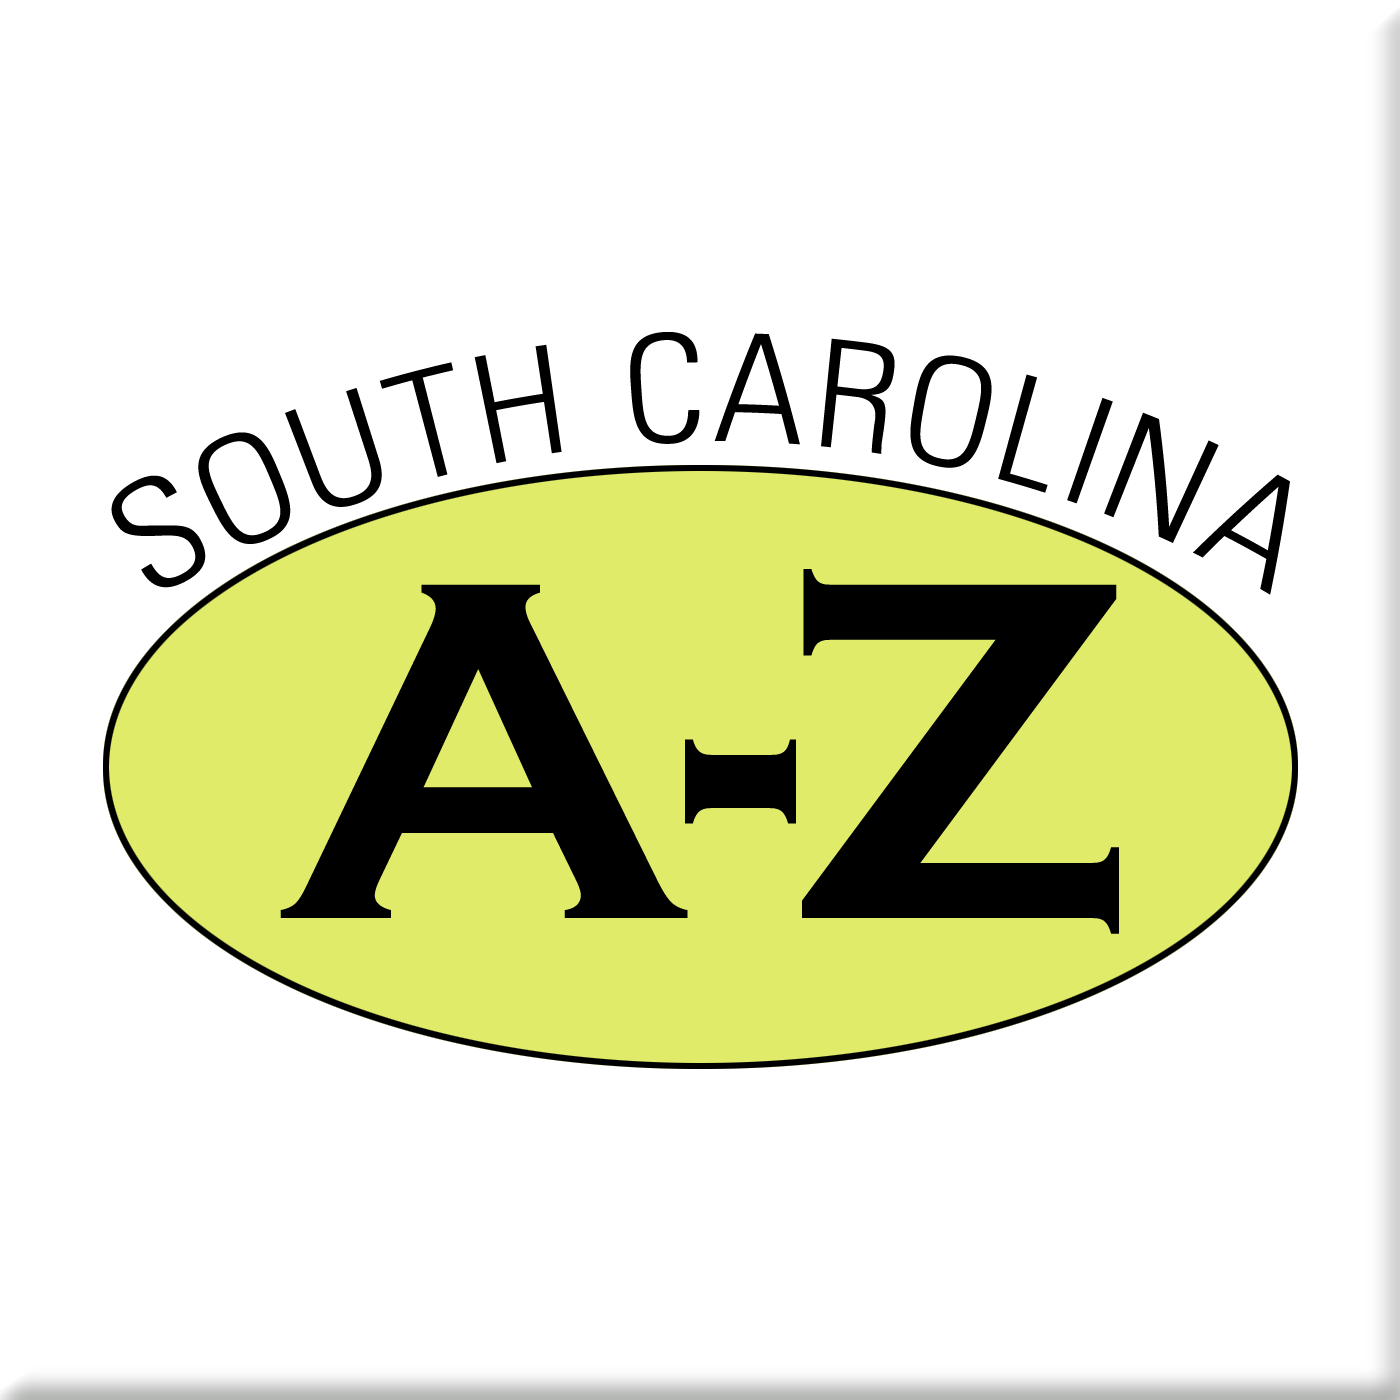 South Carolina A to Z